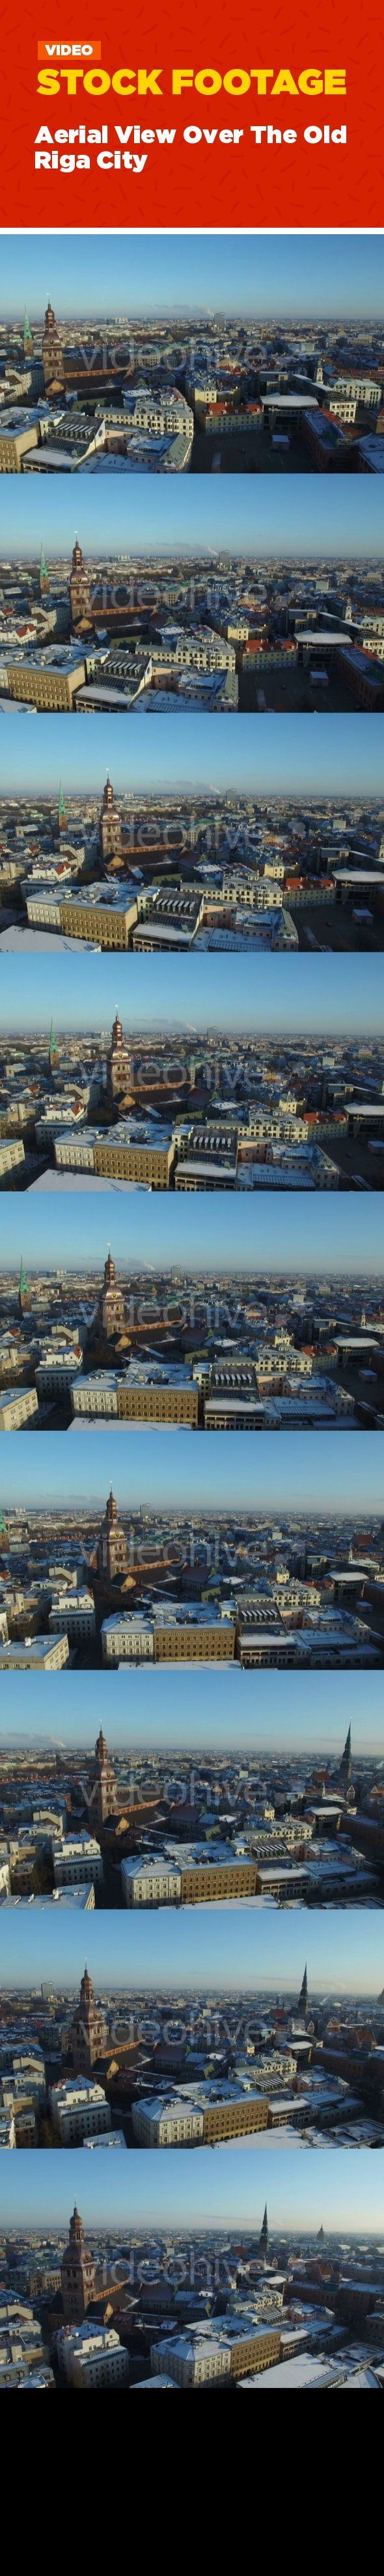 aerial, architecture, baltic, city, cityscape, europe, latvia, latvian, old, riga, river, rooftops, tourism, town, view Aerial view over the Old Riga City, Latvia